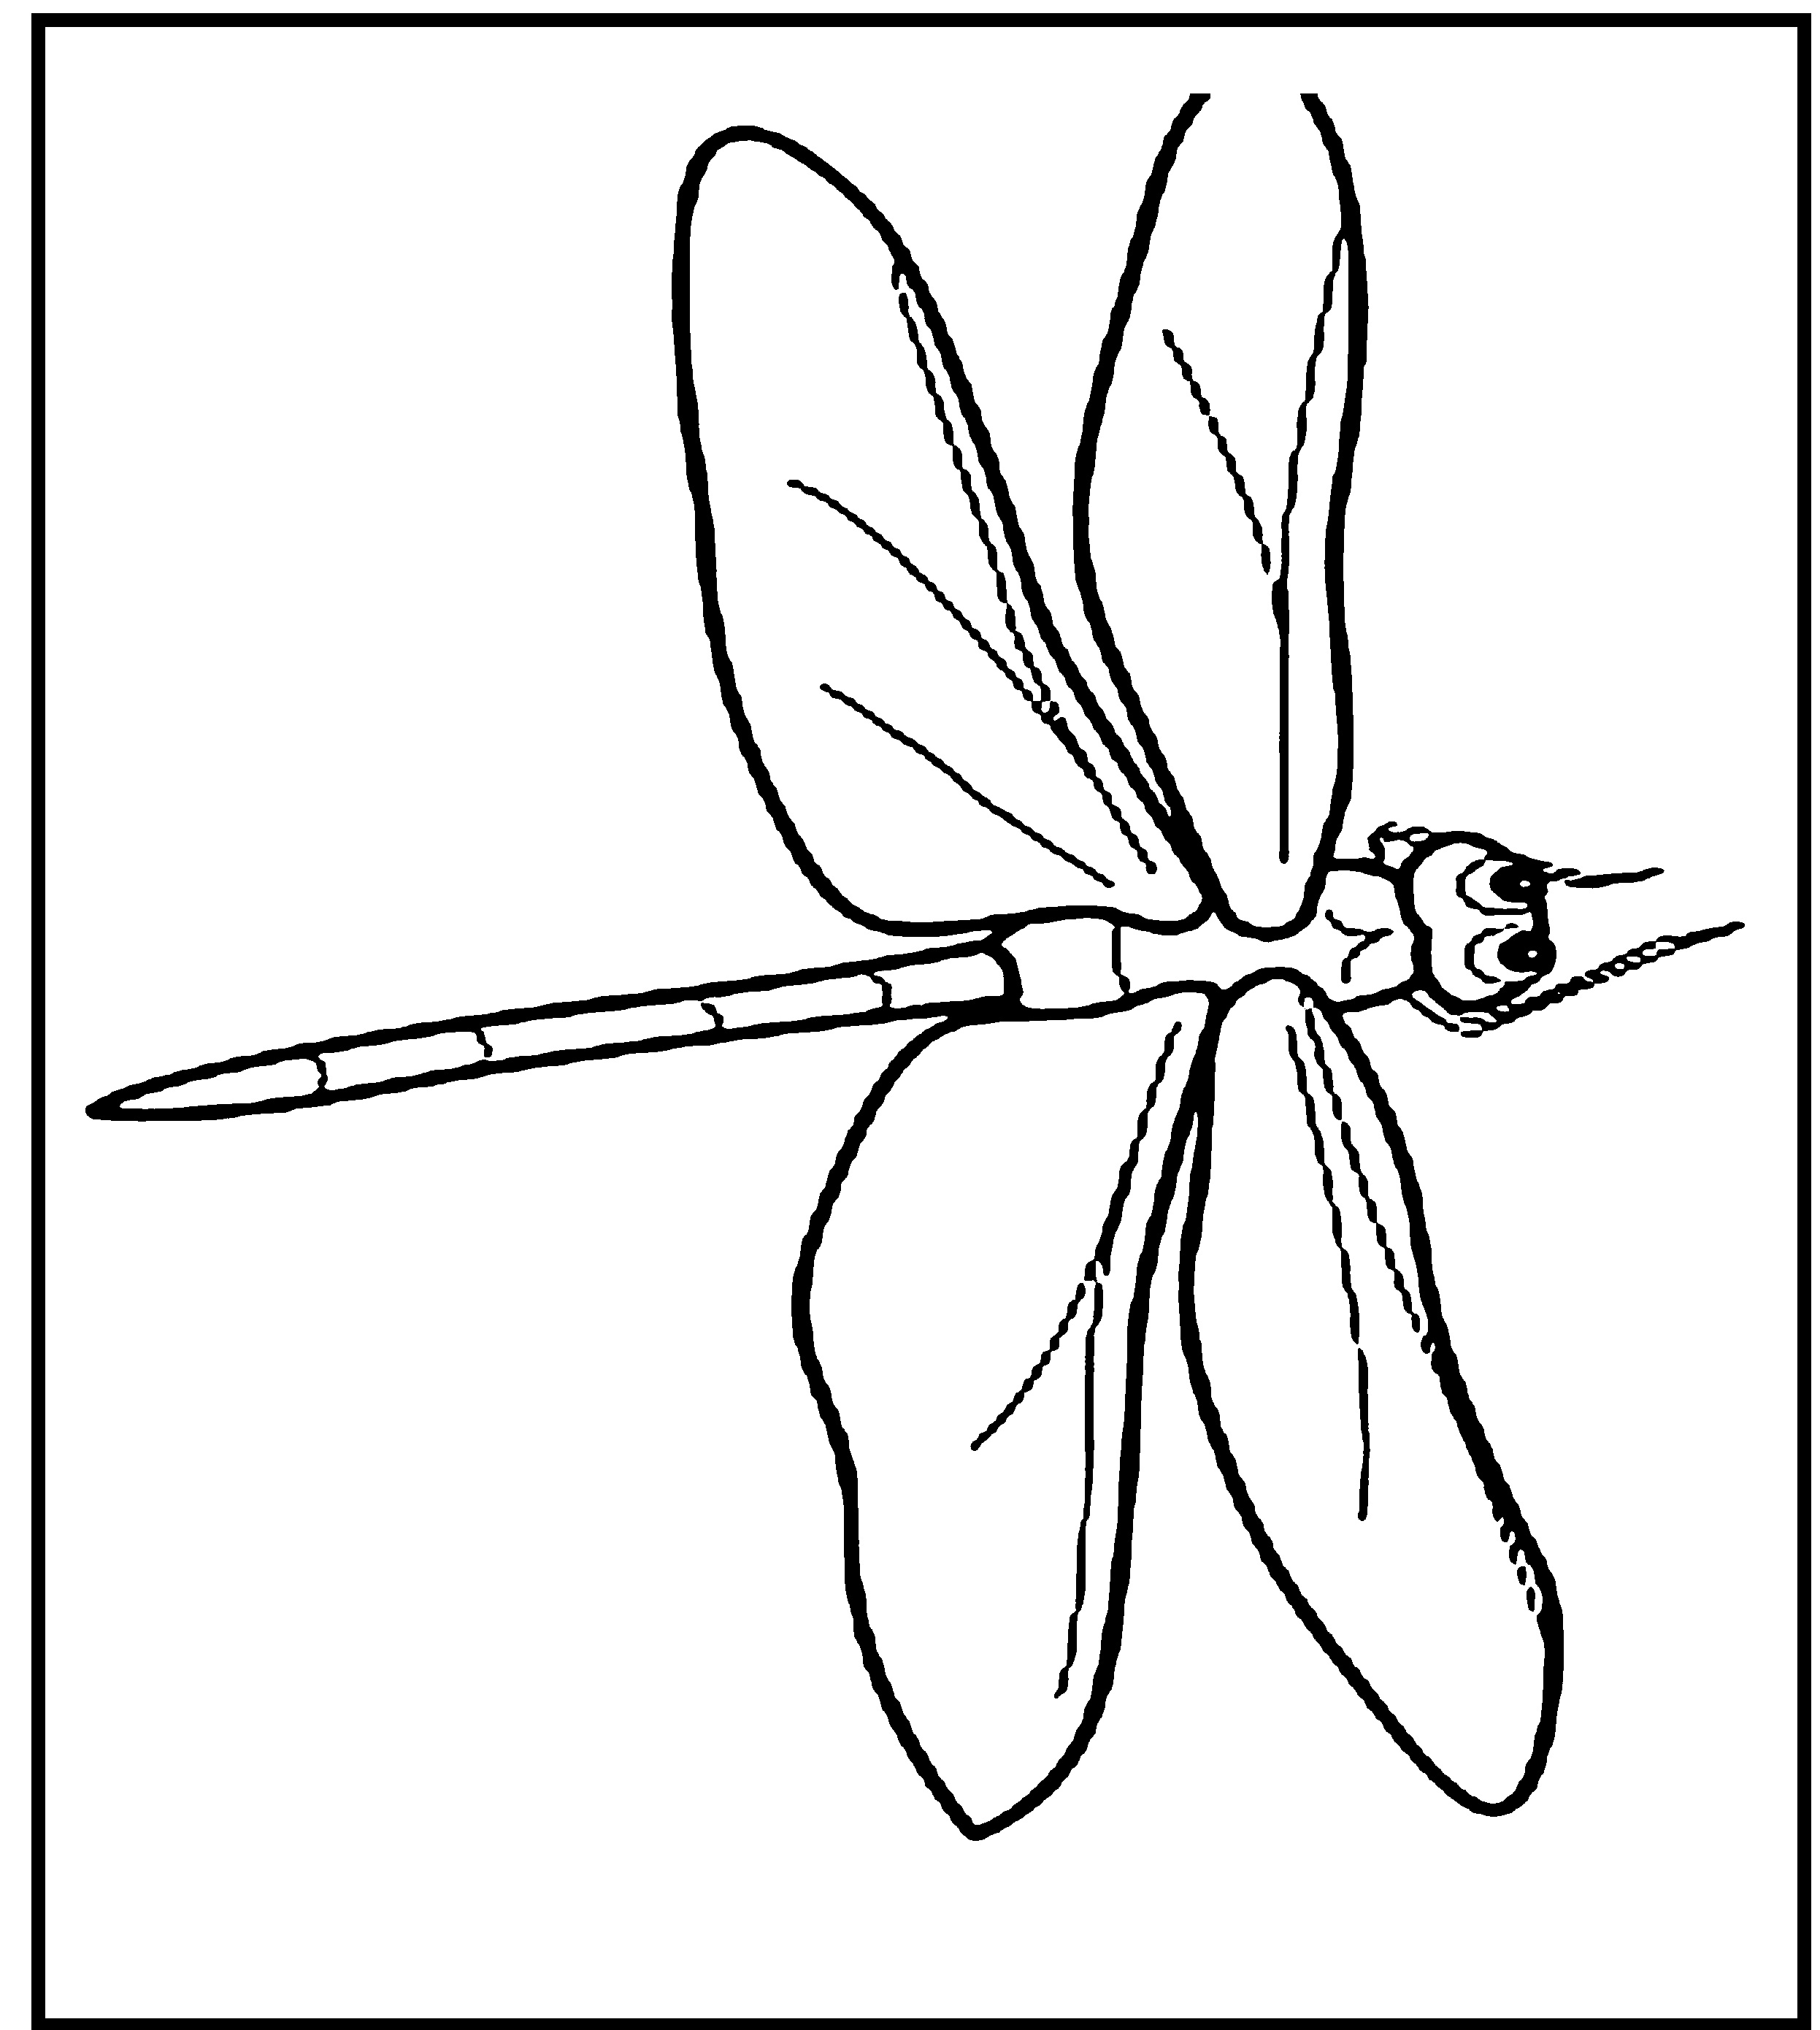 Free Printable Dragonfly Coloring Pages For Kids | Animal ...